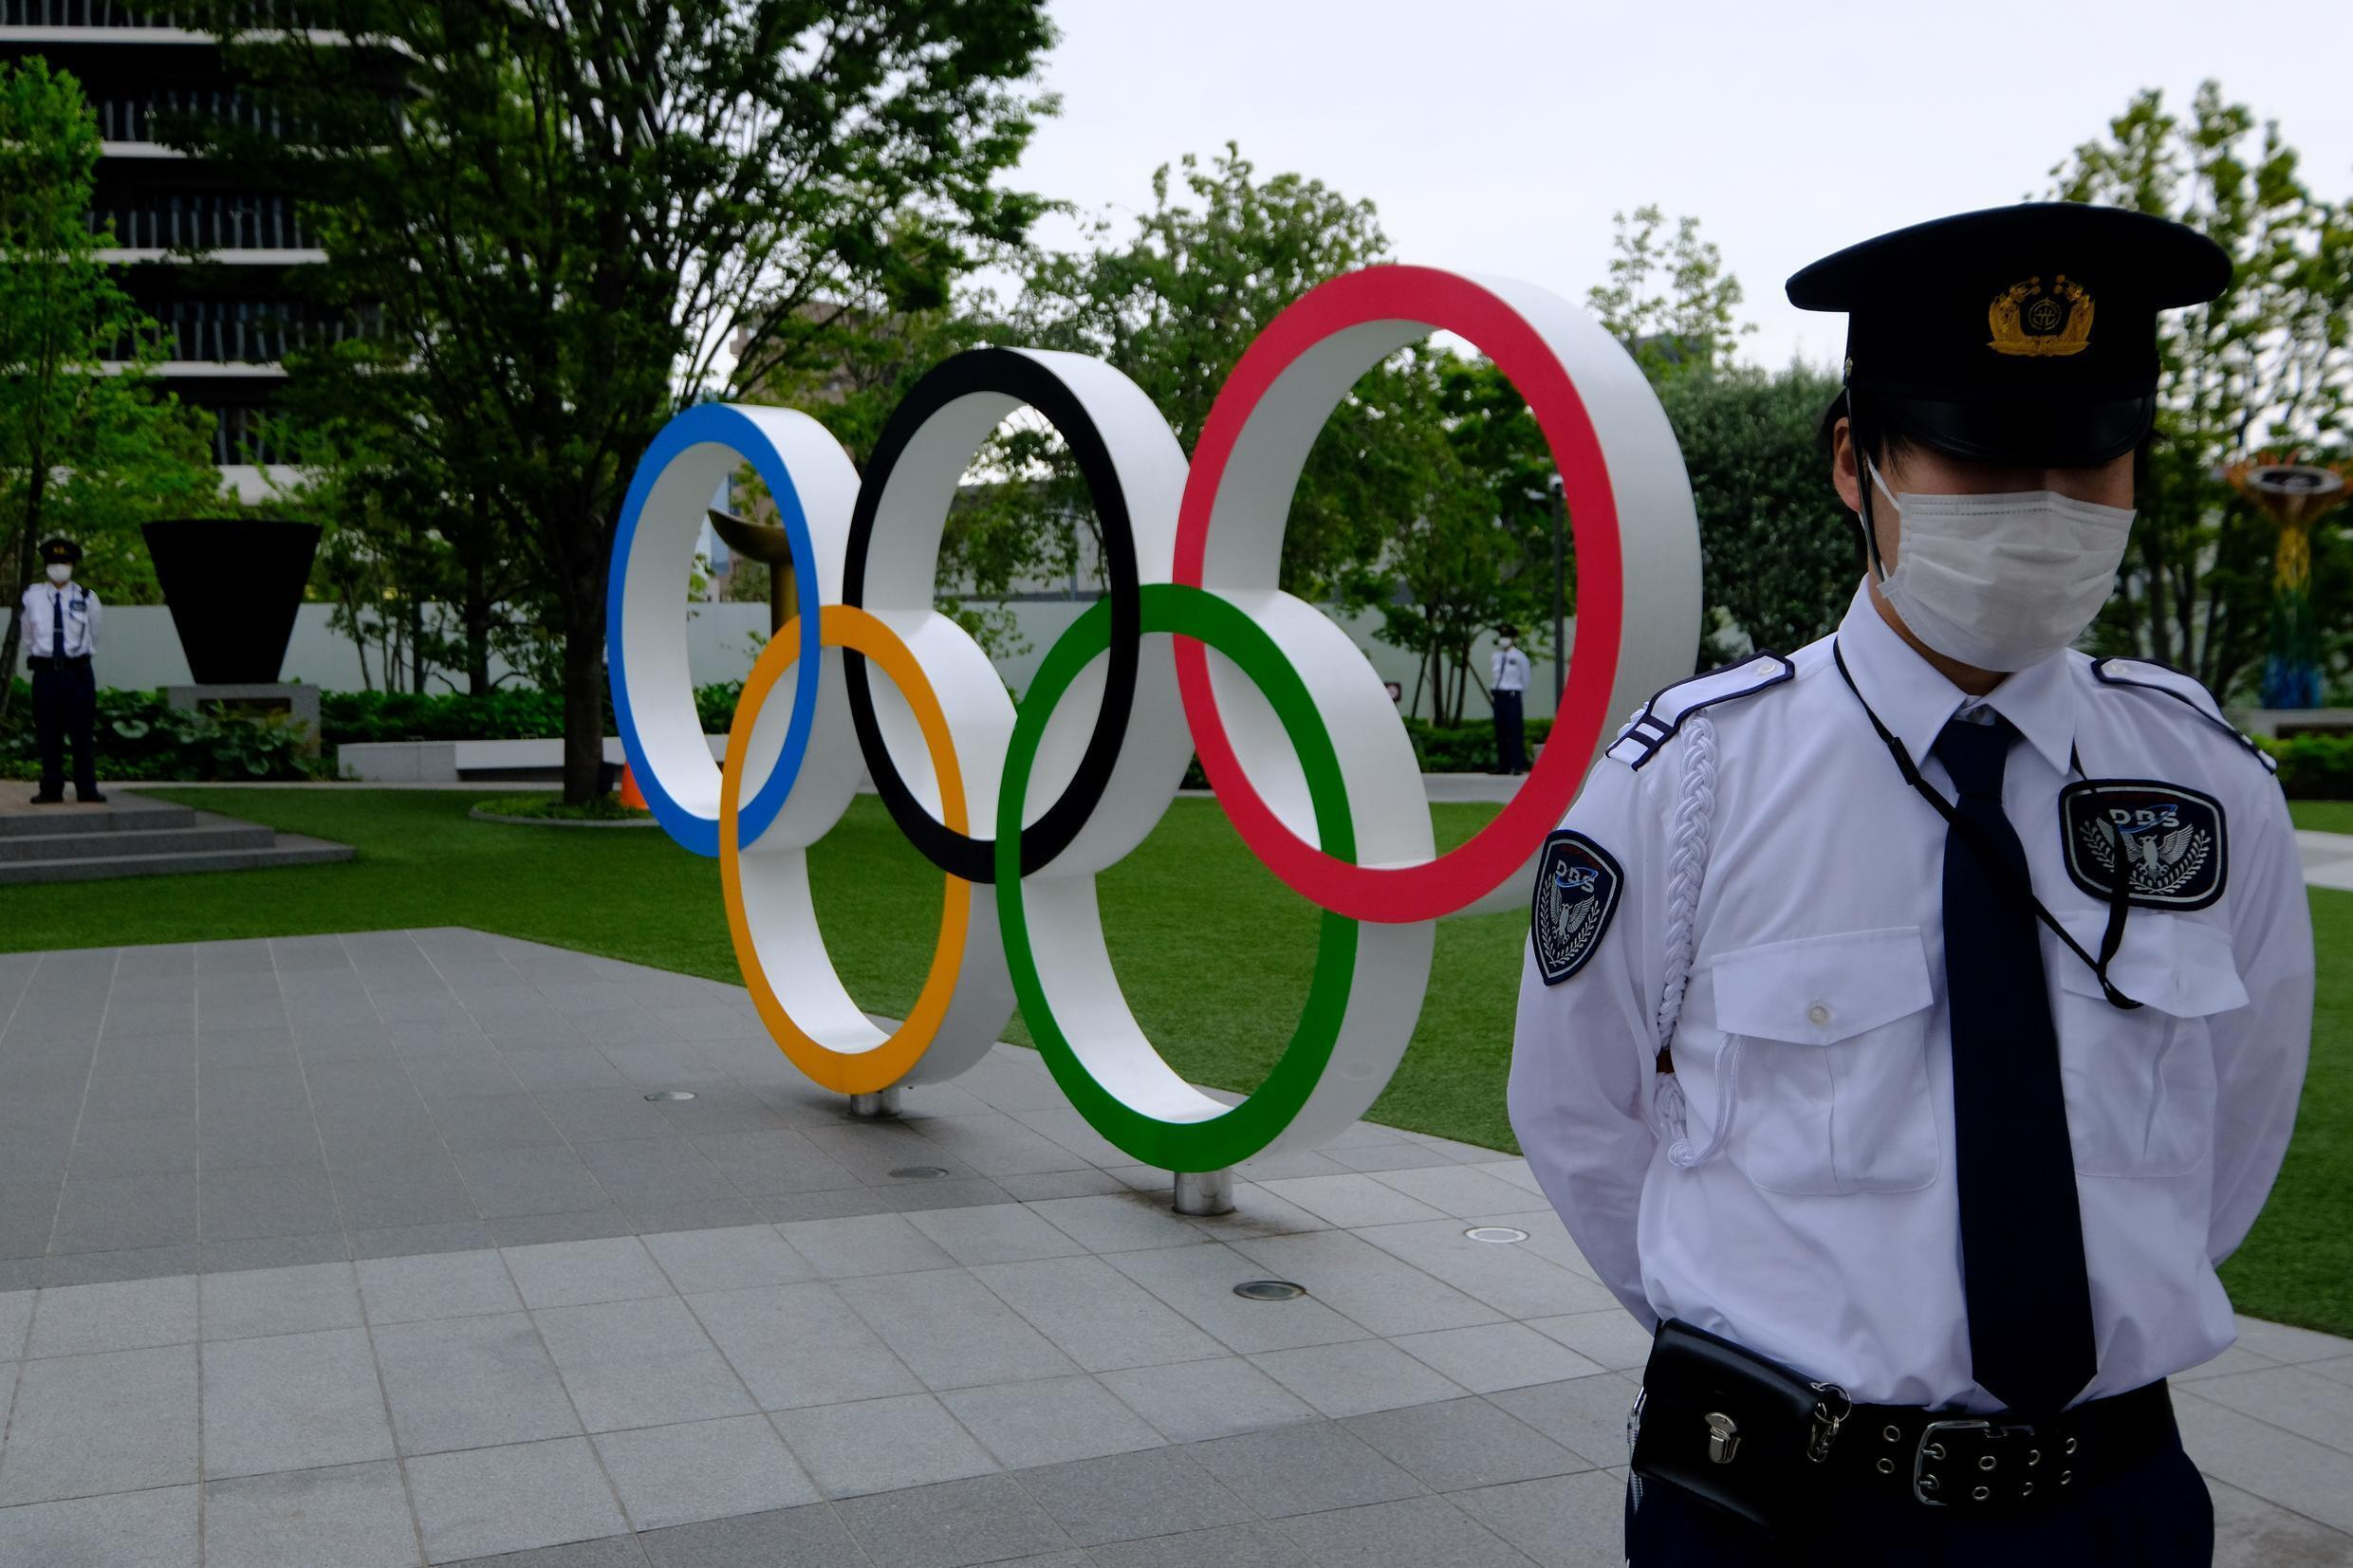 Security guards keep watch next to the Olympic Rings while people take part in a protest against the hosting of the 2020 Tokyo Olympic Games, in front of the headquarters building of the Japanese Olympic Committee in Tokyo, on May 18 2021